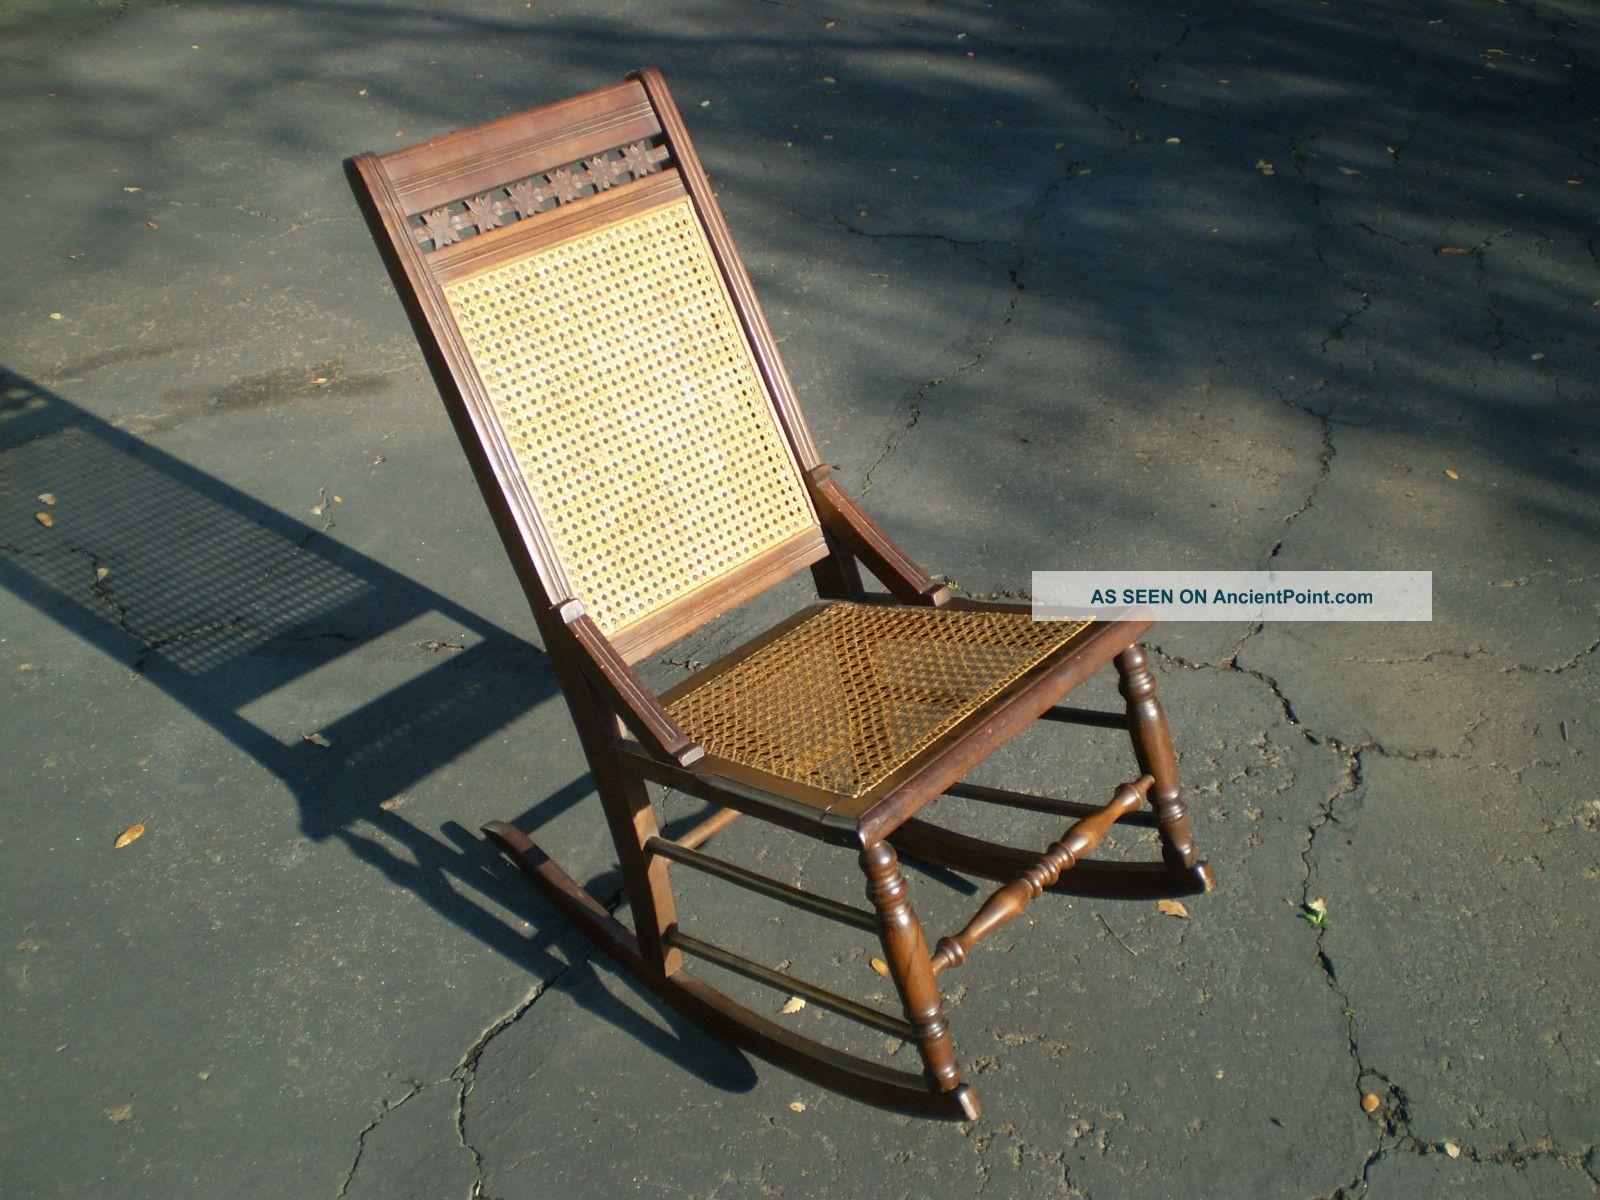 Antique Rocking Chair East Lake Carved Walnut u0026 Hand Cane Back u0026 Seat Good Cond. & Antique Rocking Chair East Lake Carved Walnut u0026 Hand Cane Back ...